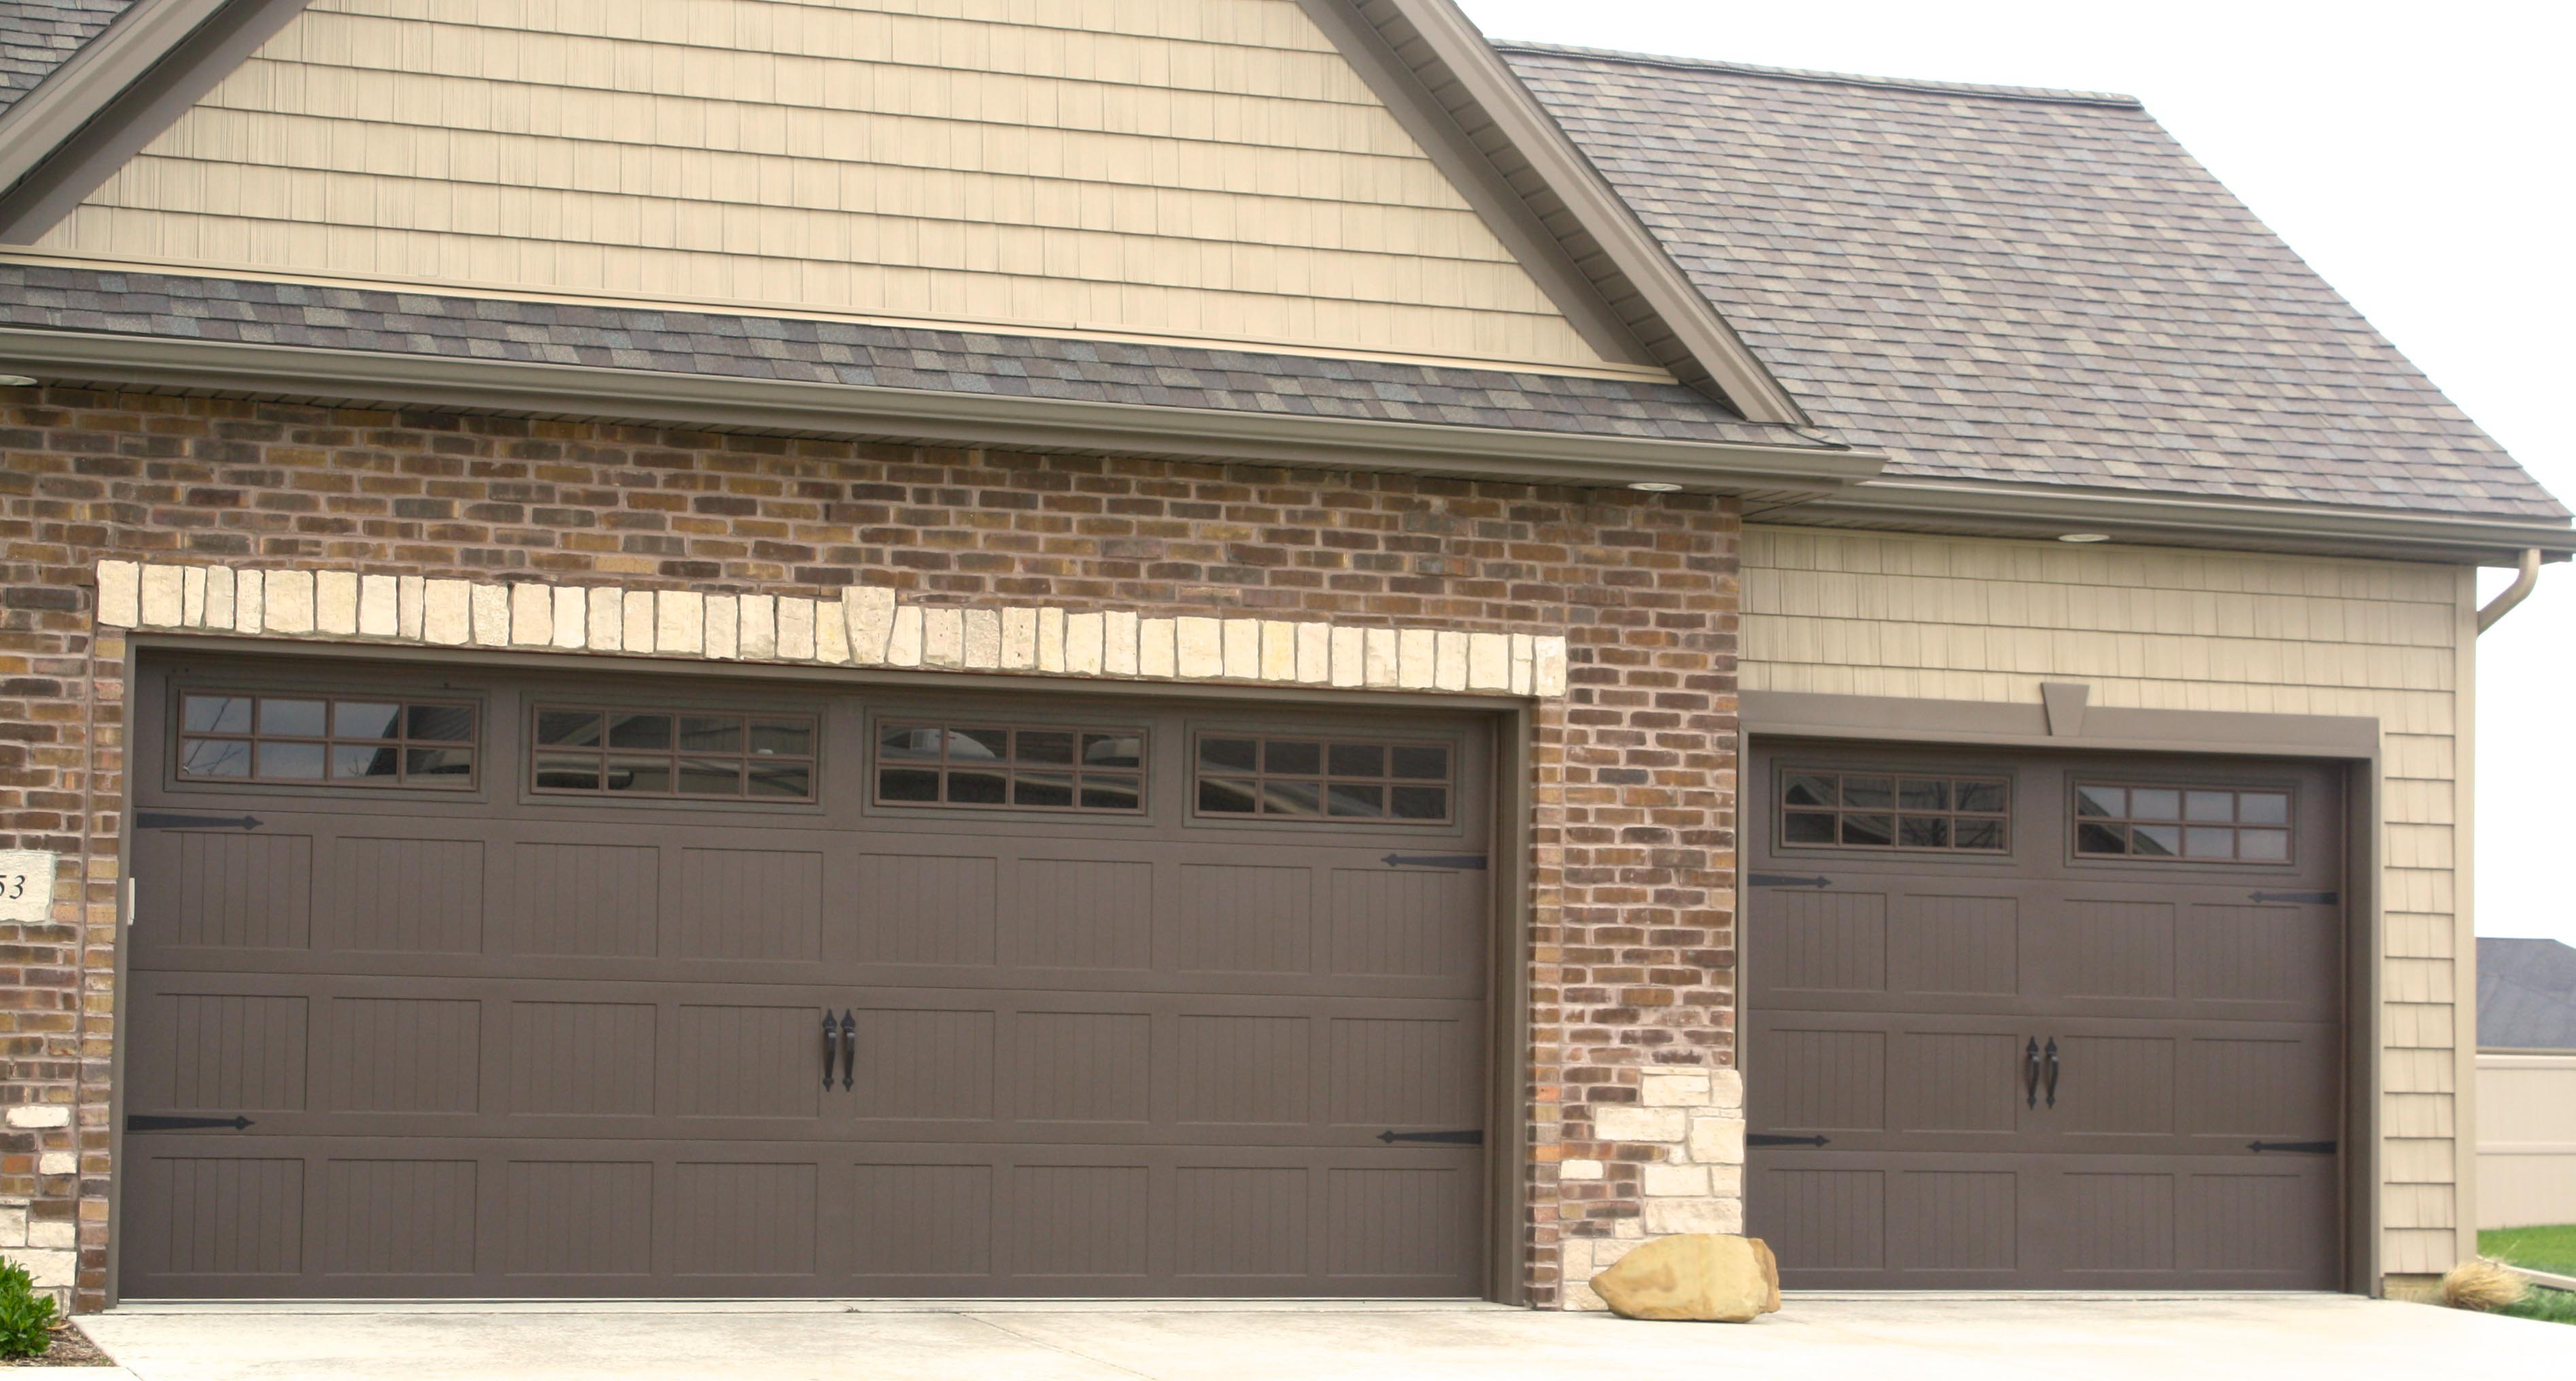 brown garage doors with windows. Brown-carriage-style-garage-door-in-bloomginton-il-with-gridded-window -panes-and-keystone-casings-in-wexford-subdivision Brown Garage Doors With Windows